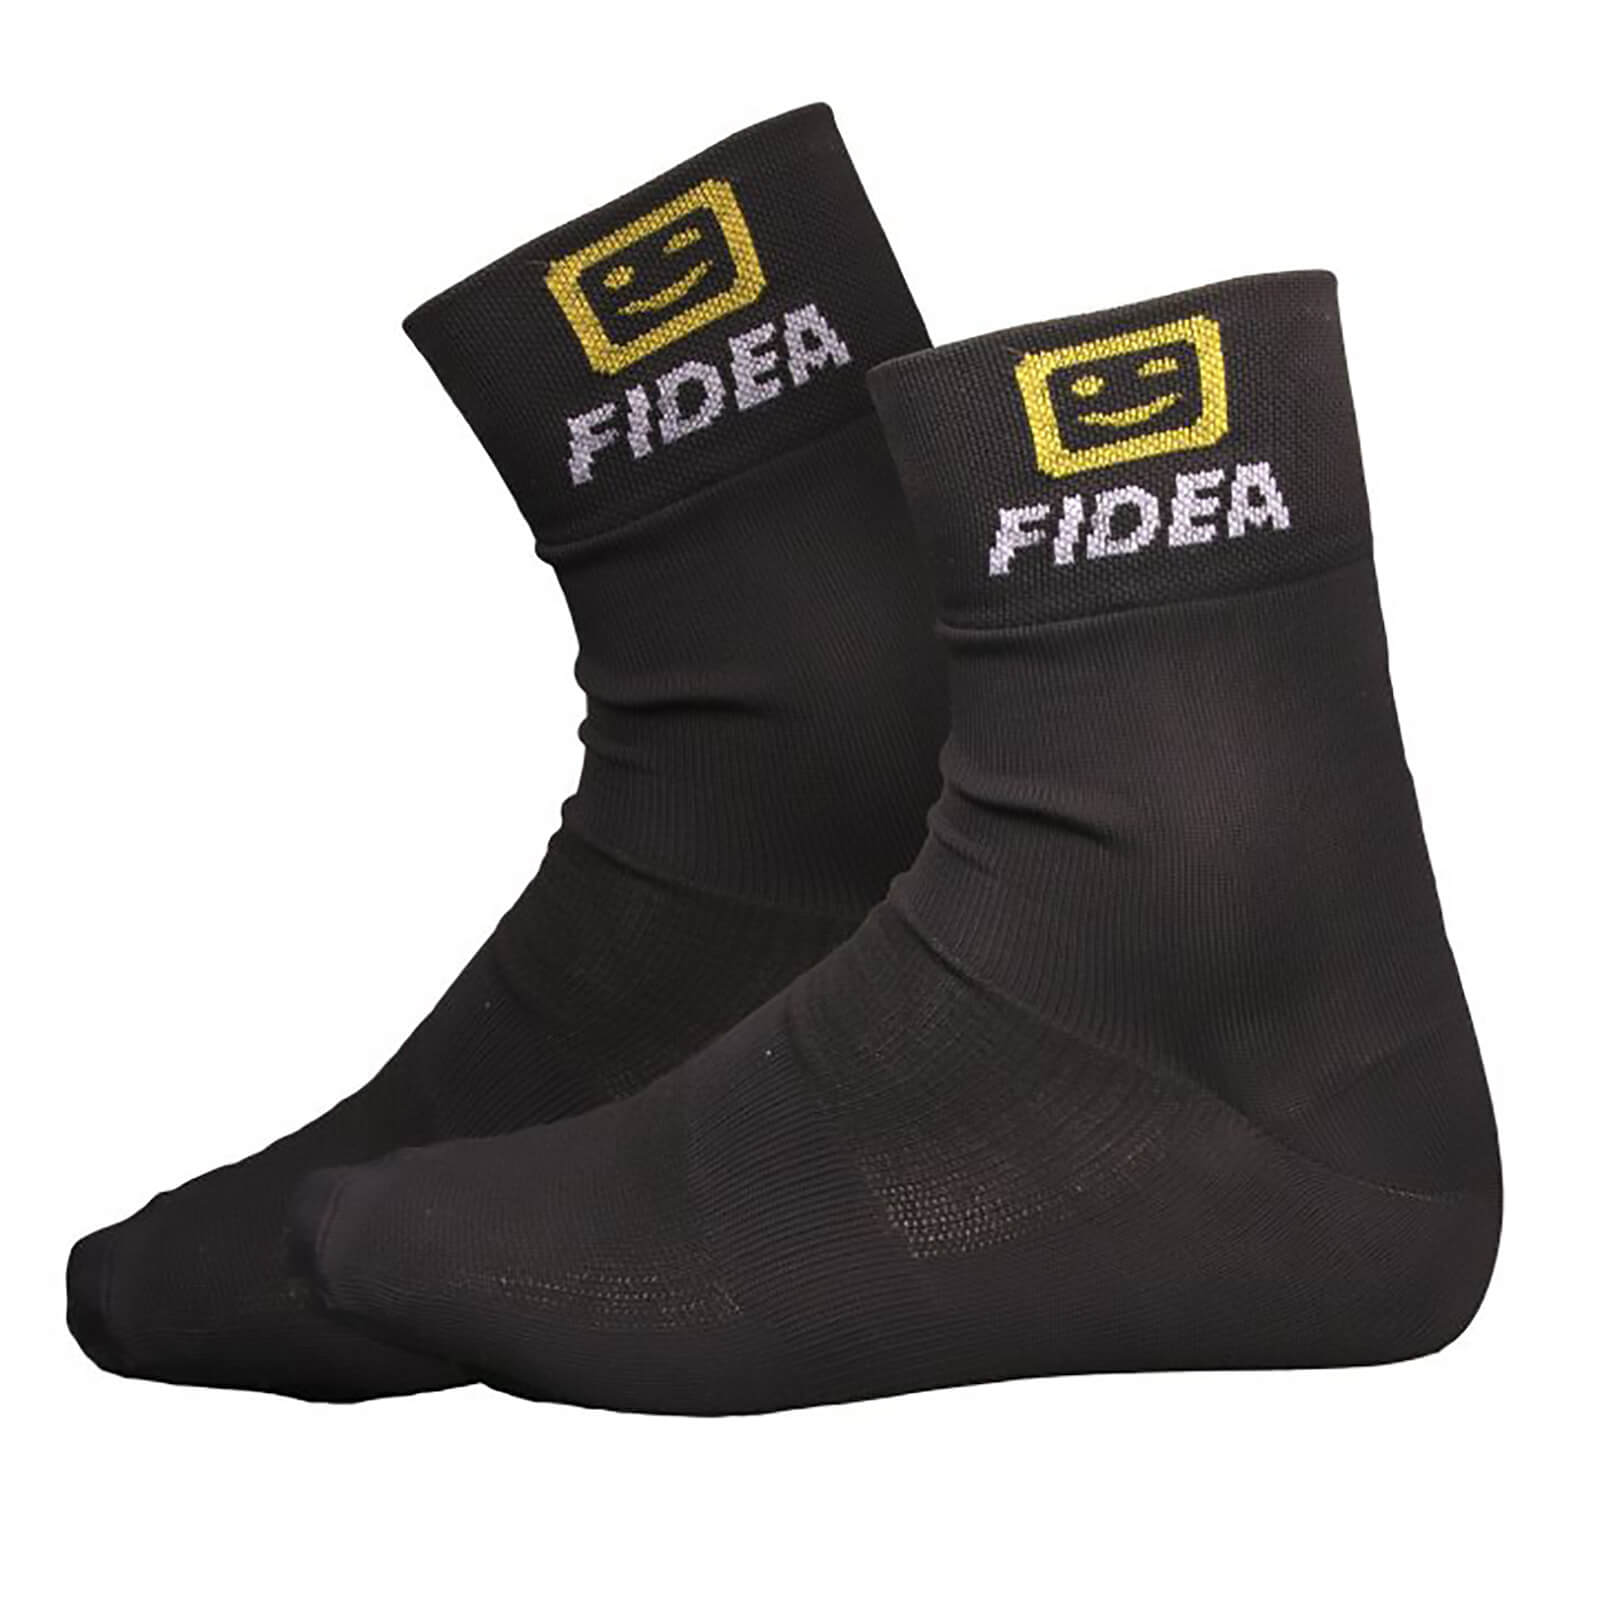 Telenet Fidea Socks - Black/Yellow/White